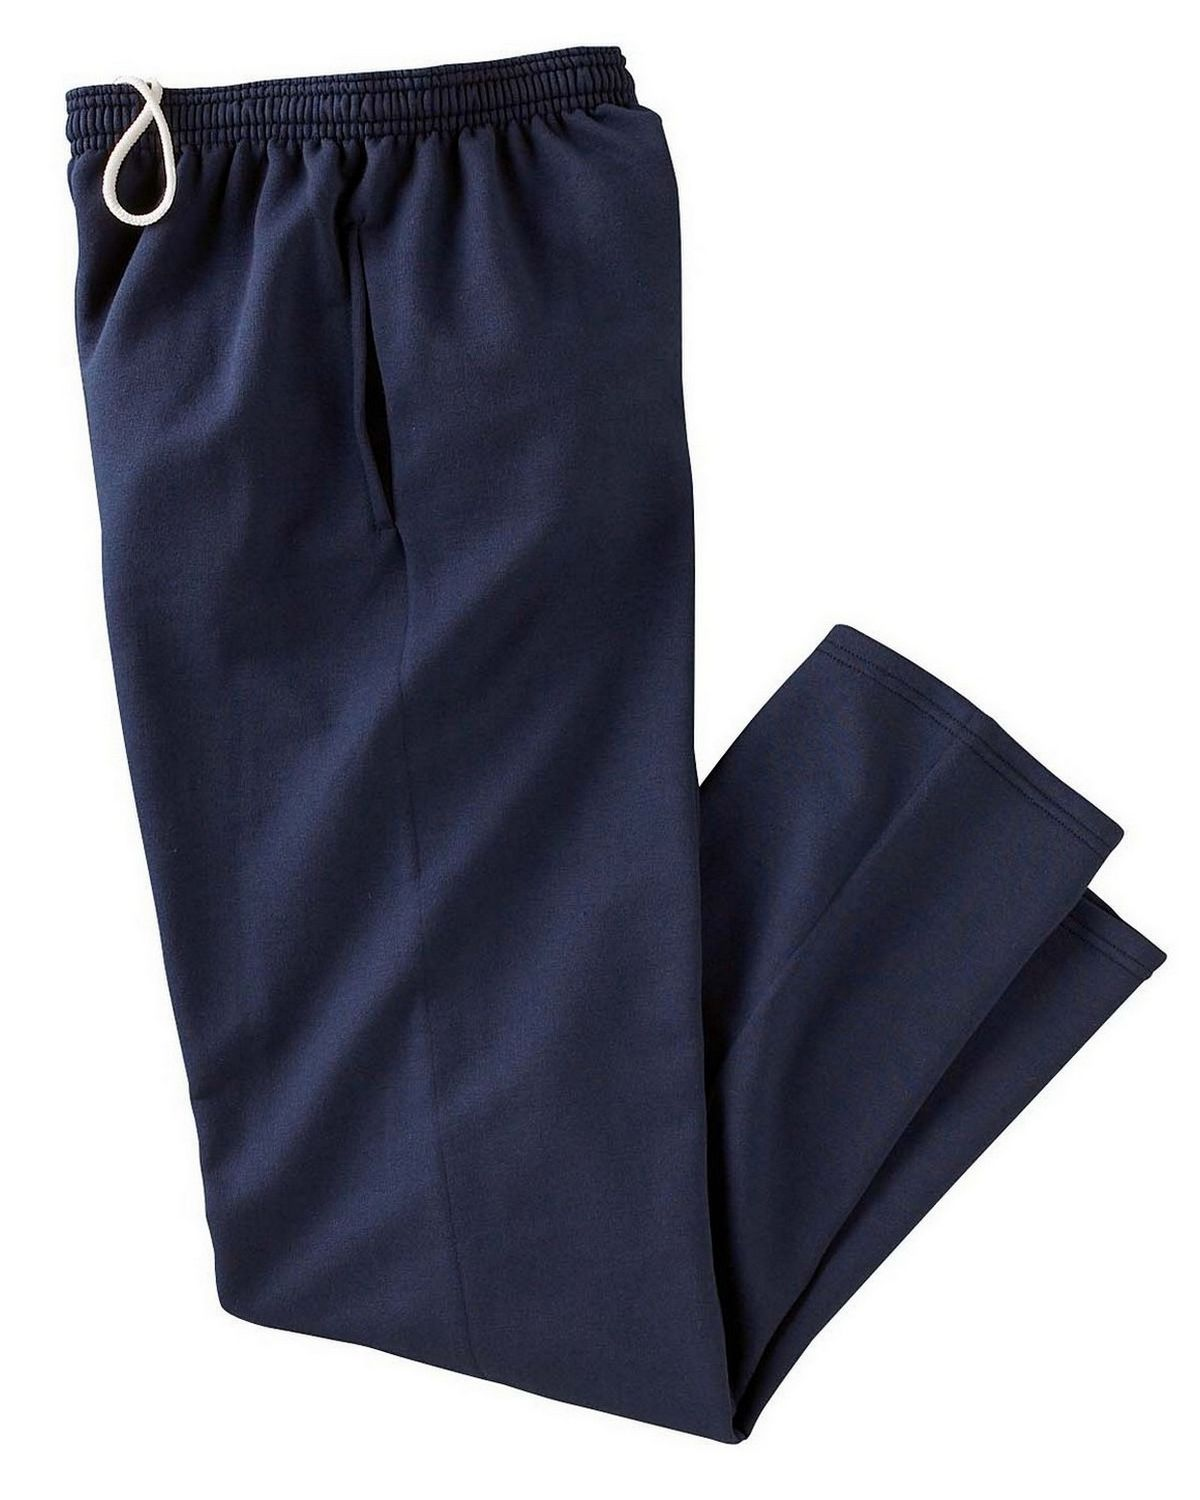 Champion P800 EcoSmart Open-Bottom Pants - Navy - S P800